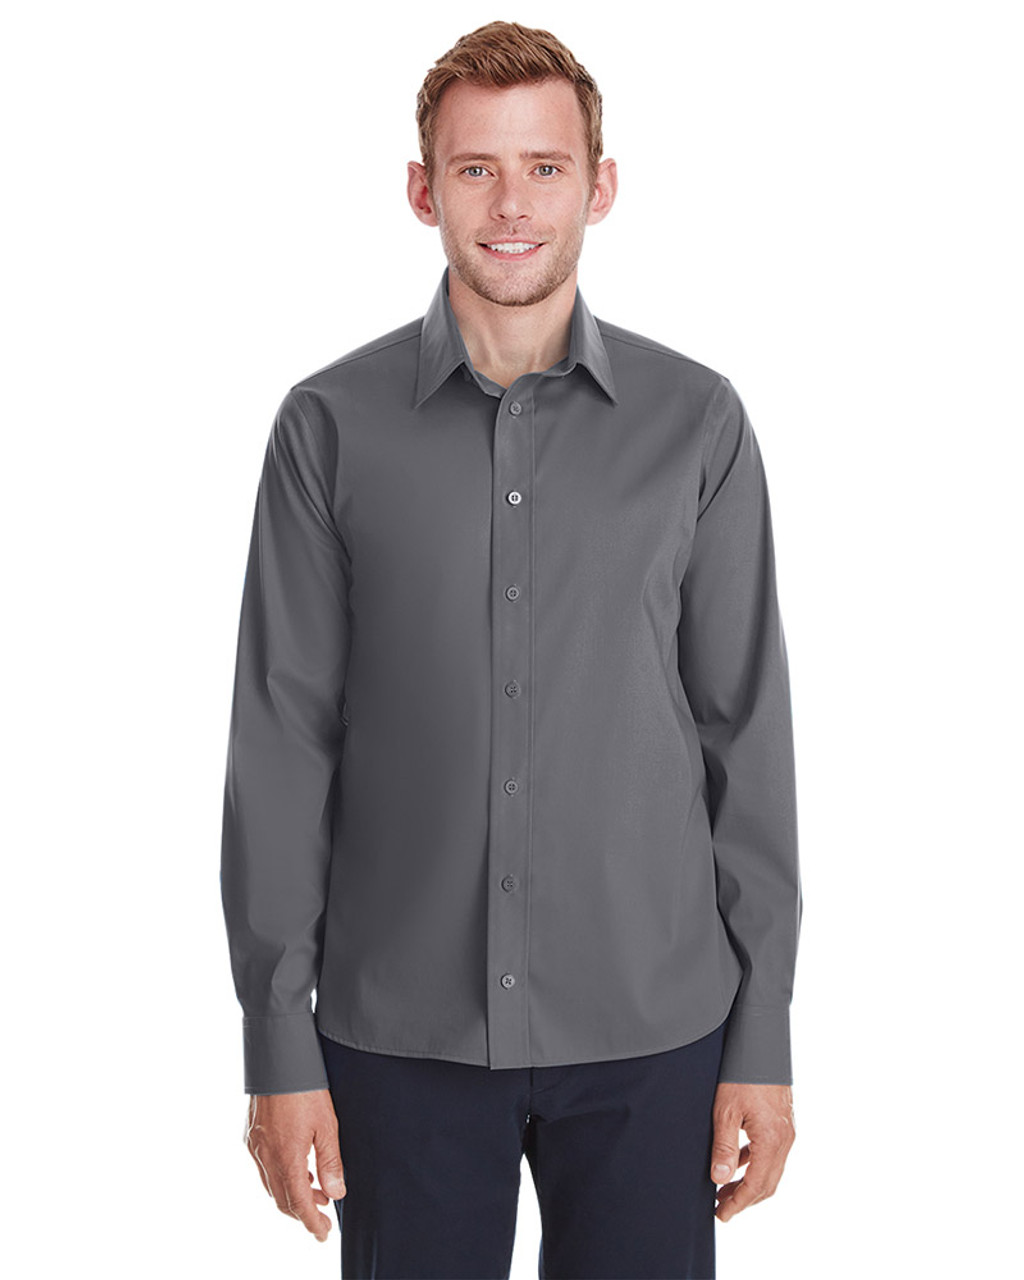 Graphite - DG561 Devon & Jones Men's Crown Collection™ Stretch Broadcloth Untucked Shirt | Blankclothing.ca